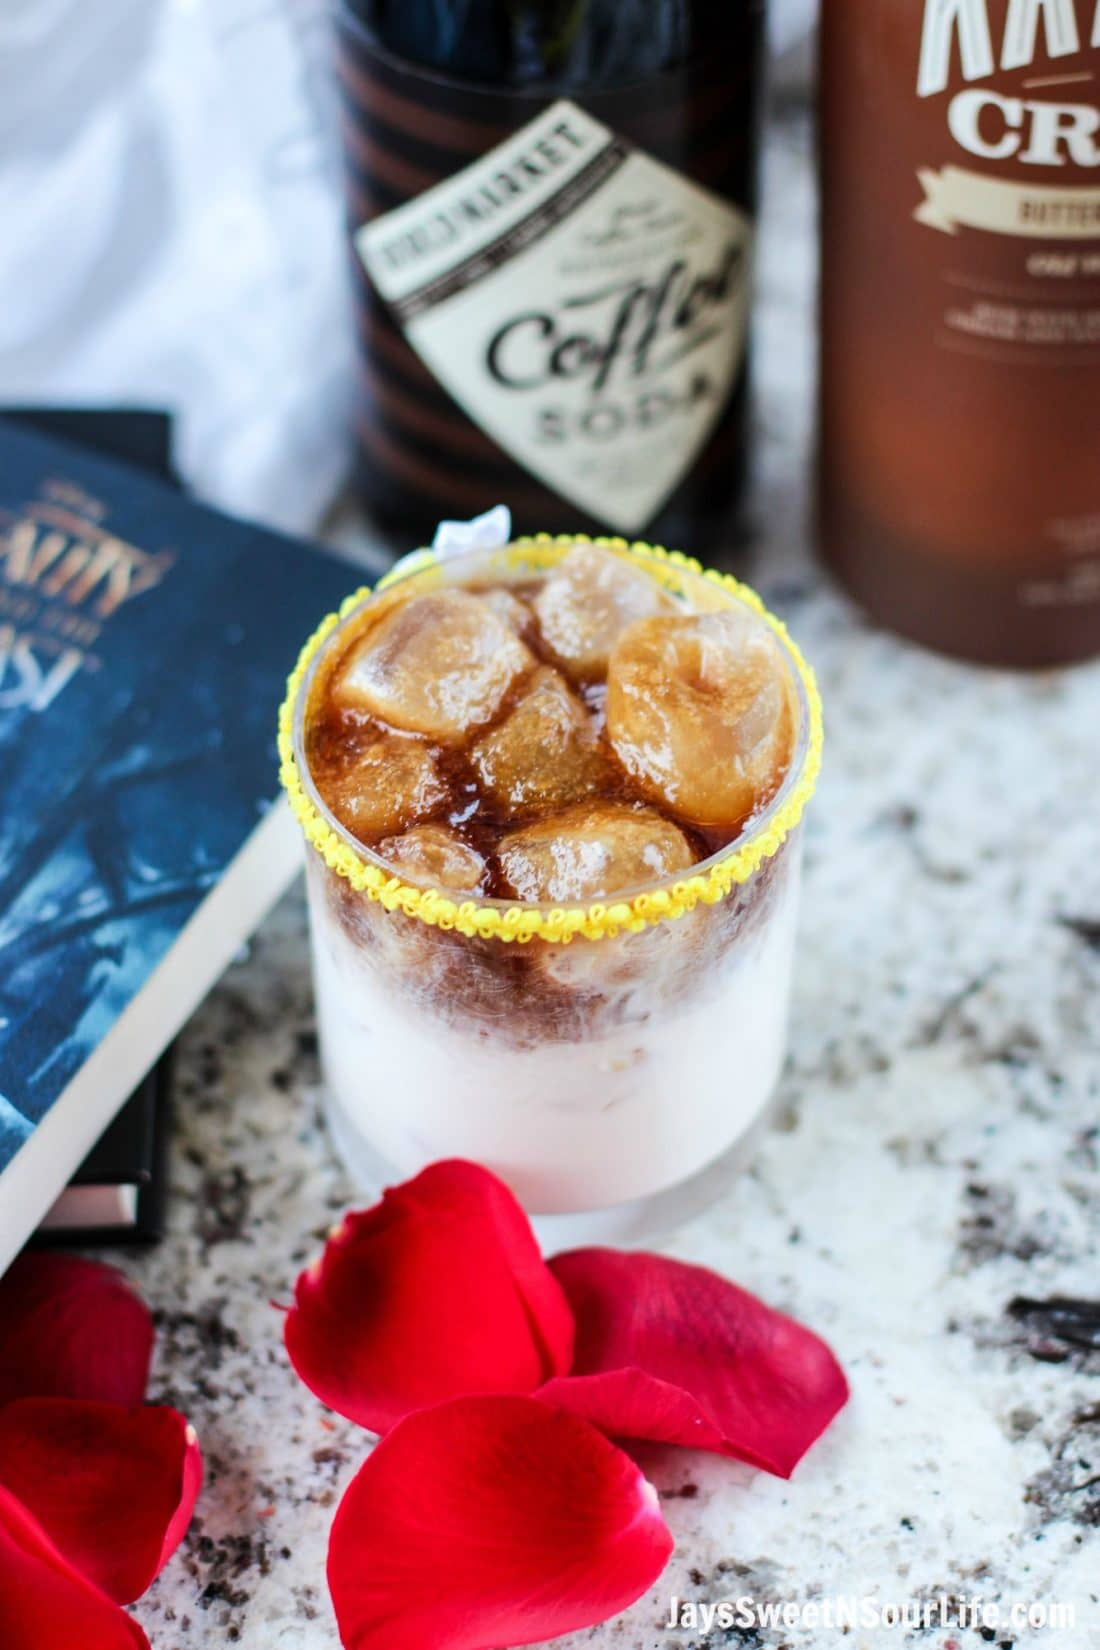 Beauty and the Beast Cocktails. Break the curse with this Disney inspired Beauty and the Beast Cocktail. Made with layers of Kringle Cream Liqueur and Coffee Soda, this simple but elegant cocktail recipe delivers a delicious big flavor.